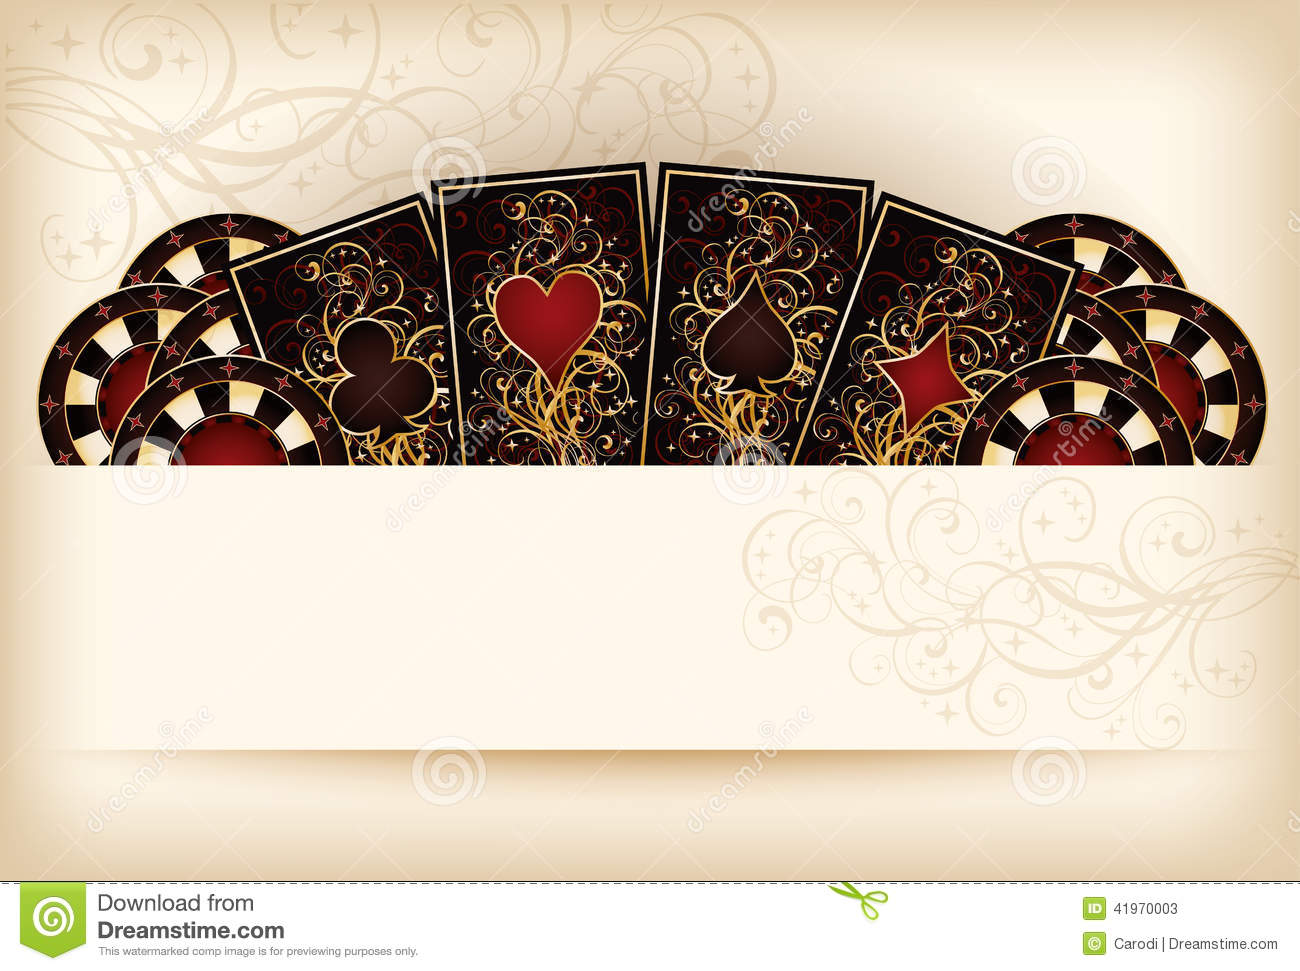 Casino Wallpaper With Poker Elements Stock Vector  Image 41970003